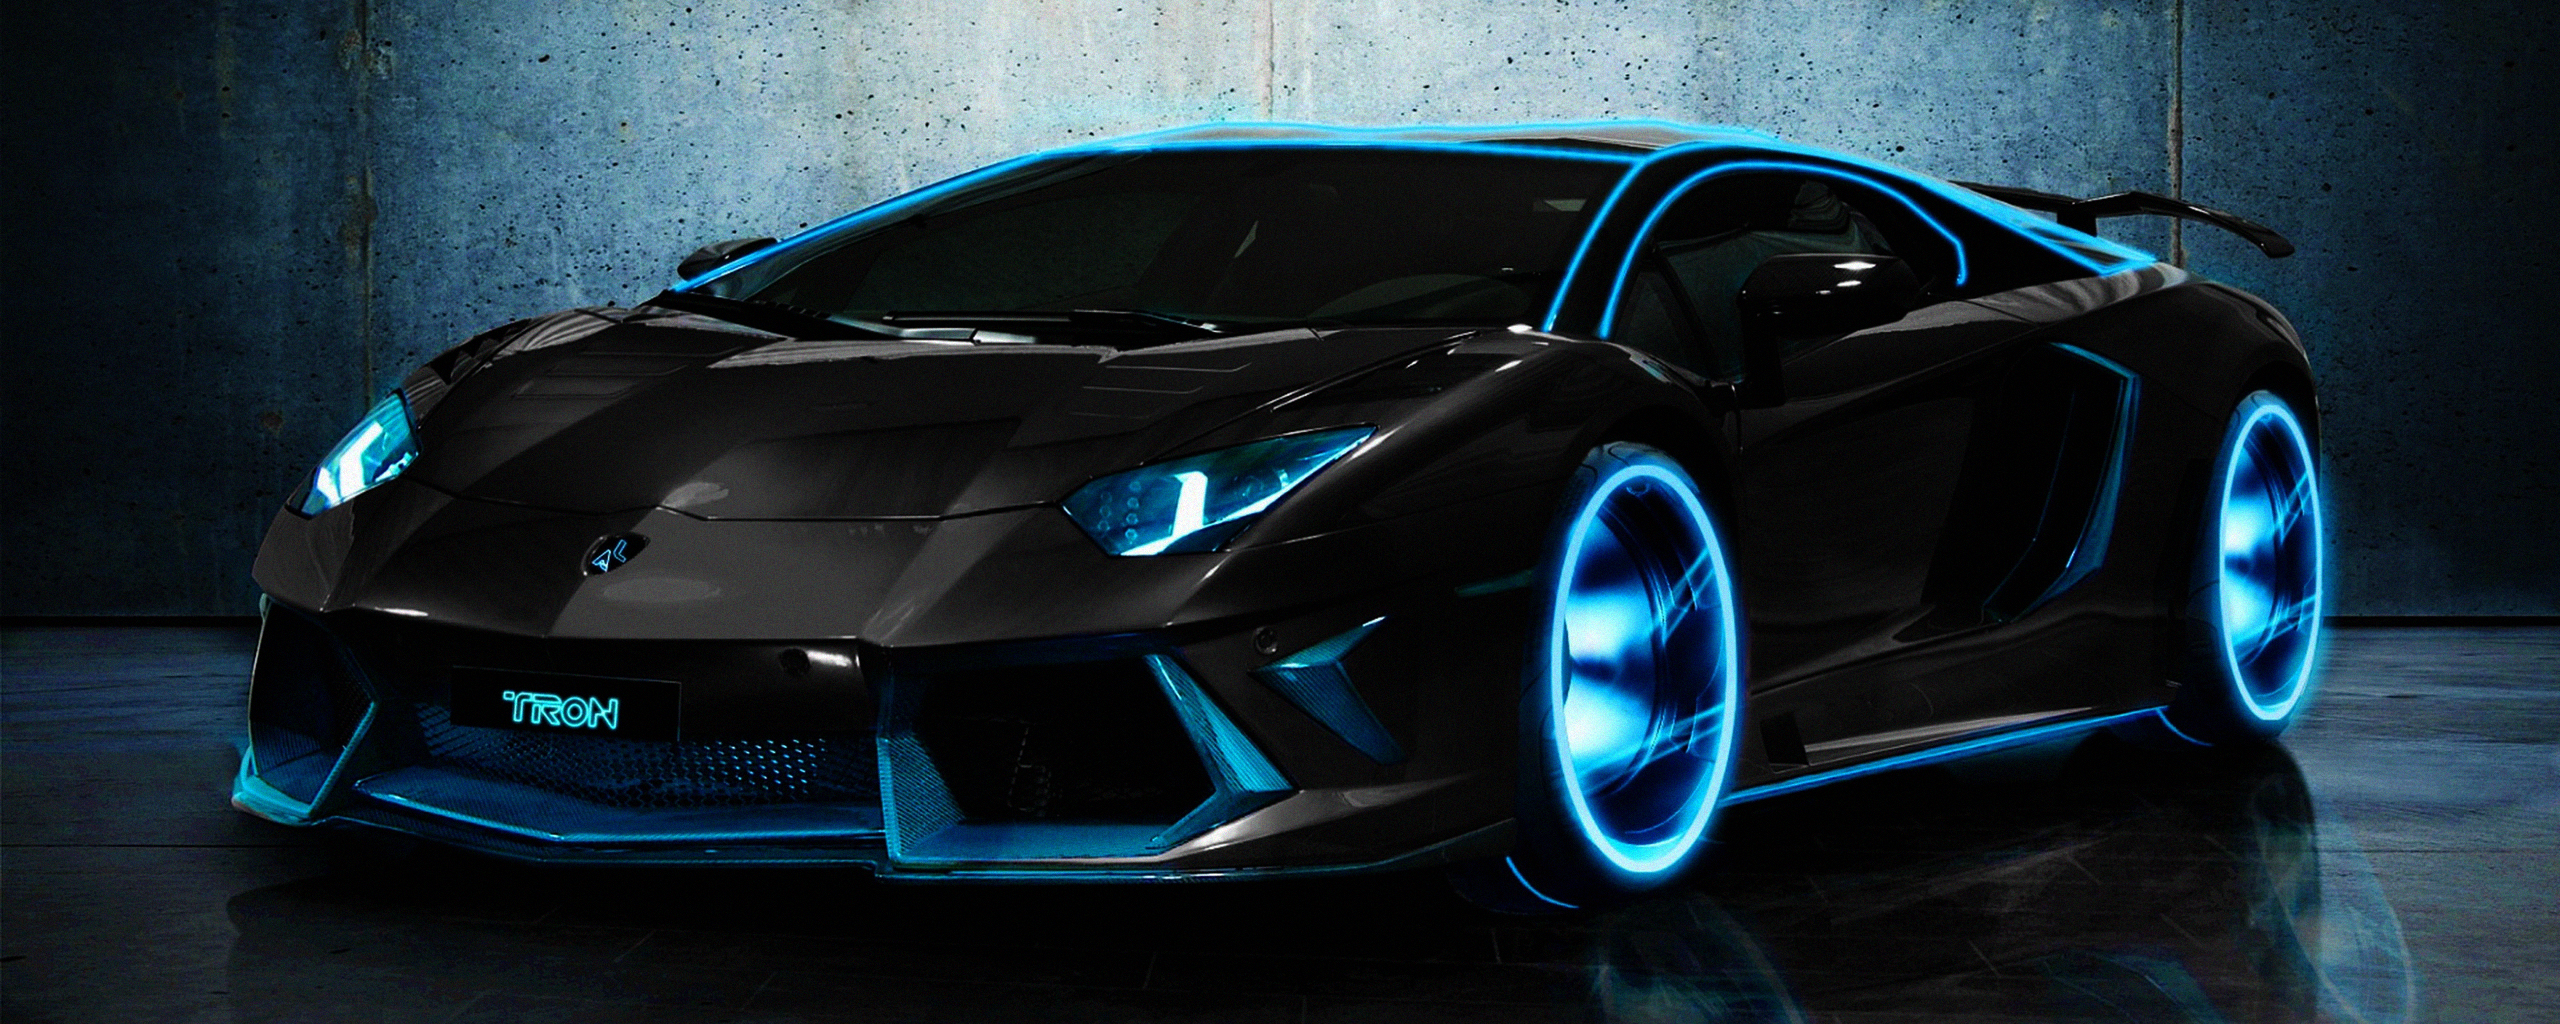 Lamborghini HD Wallpapers